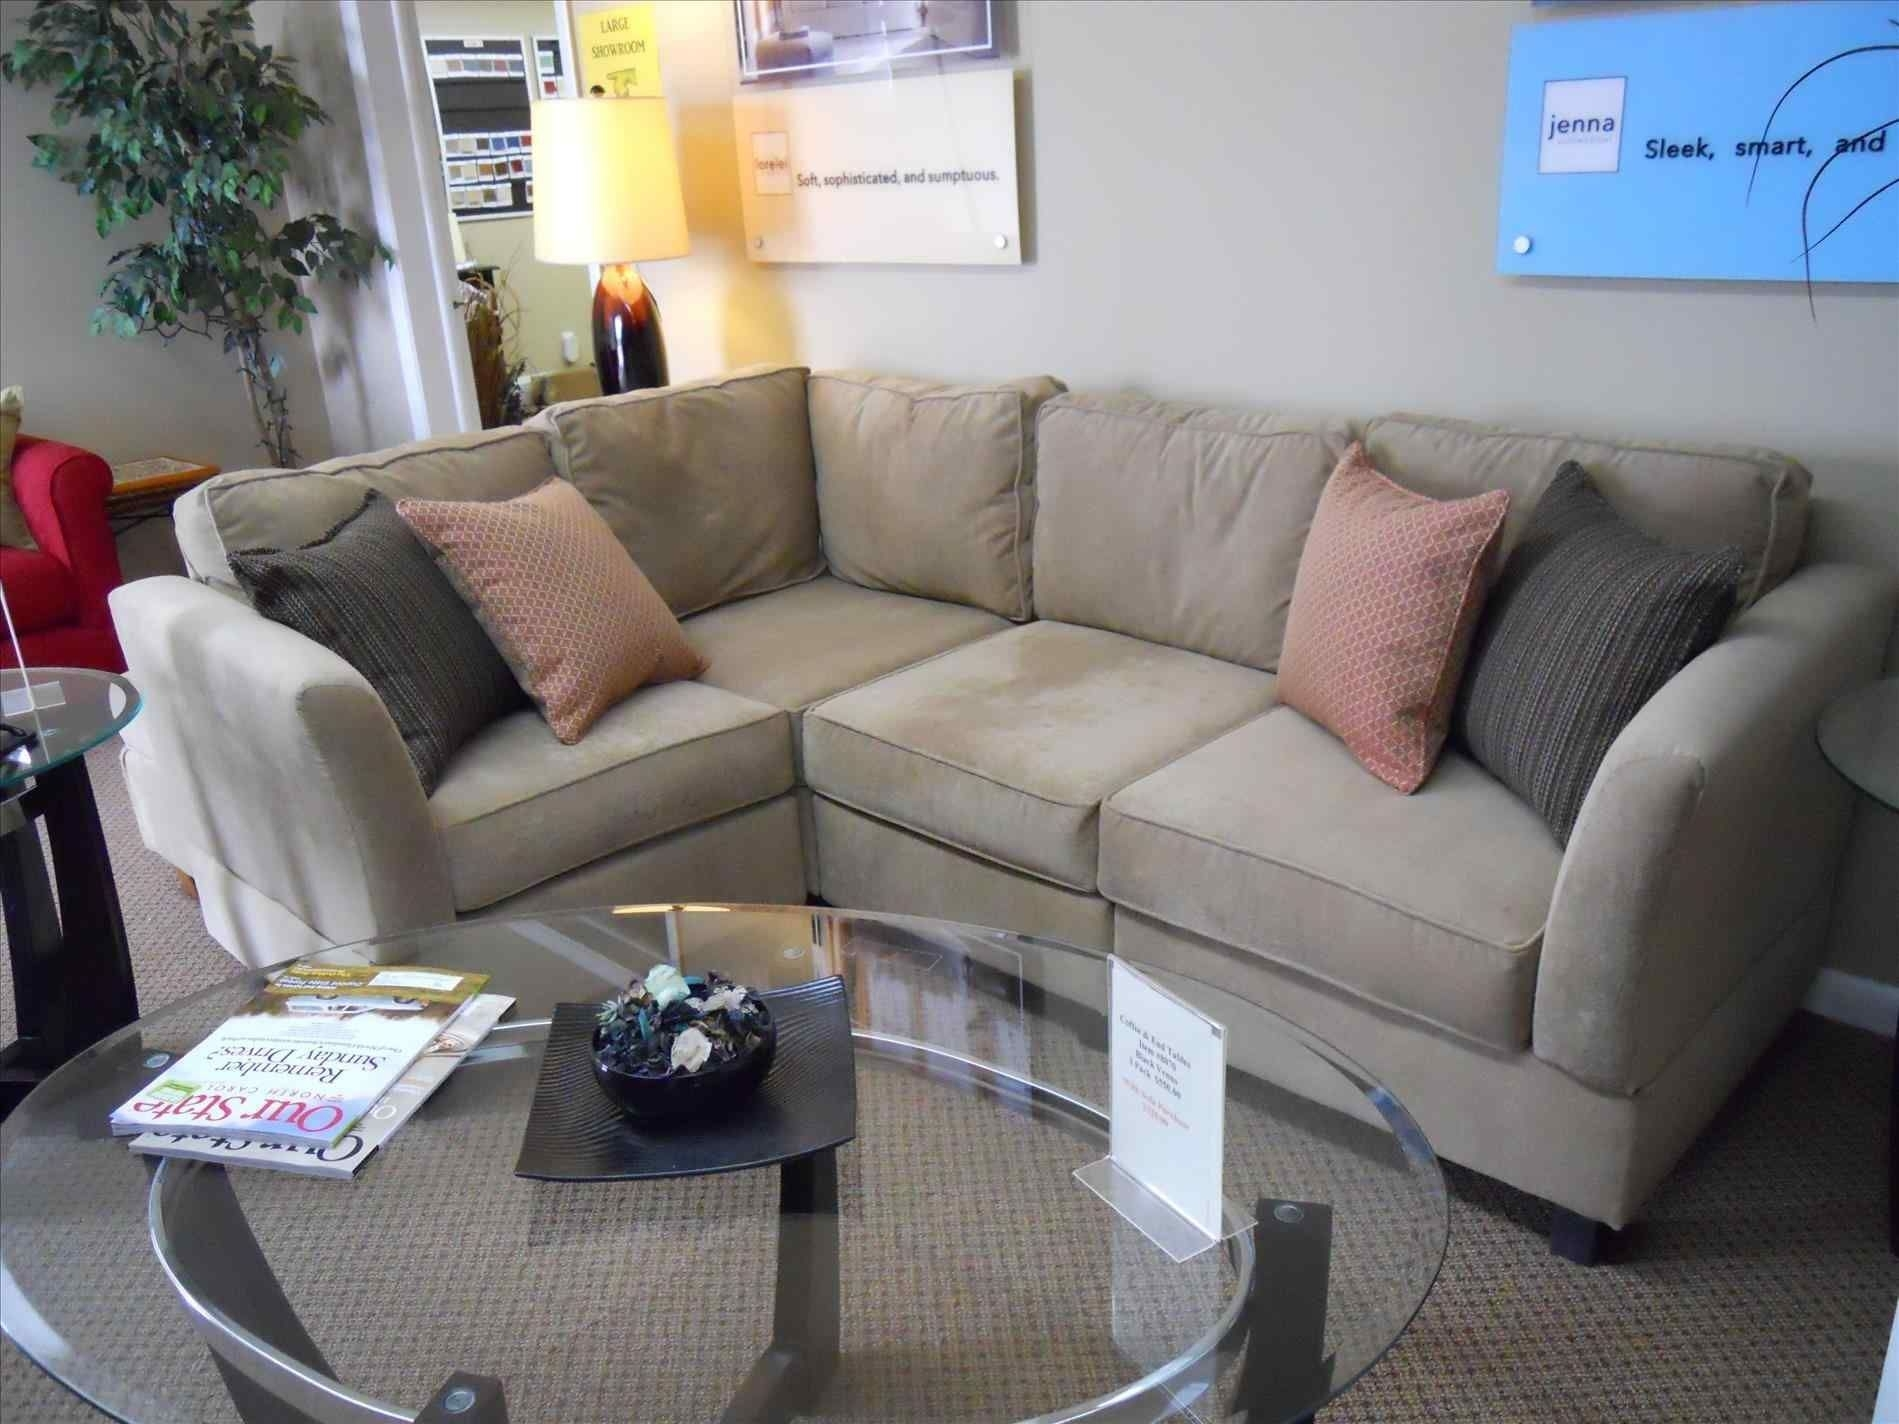 For Cozy Living Room Lazy Boy Chair Home Designs Lazy Sectional Sofa Throughout Lazy Boy Sectional Sofas (View 6 of 10)